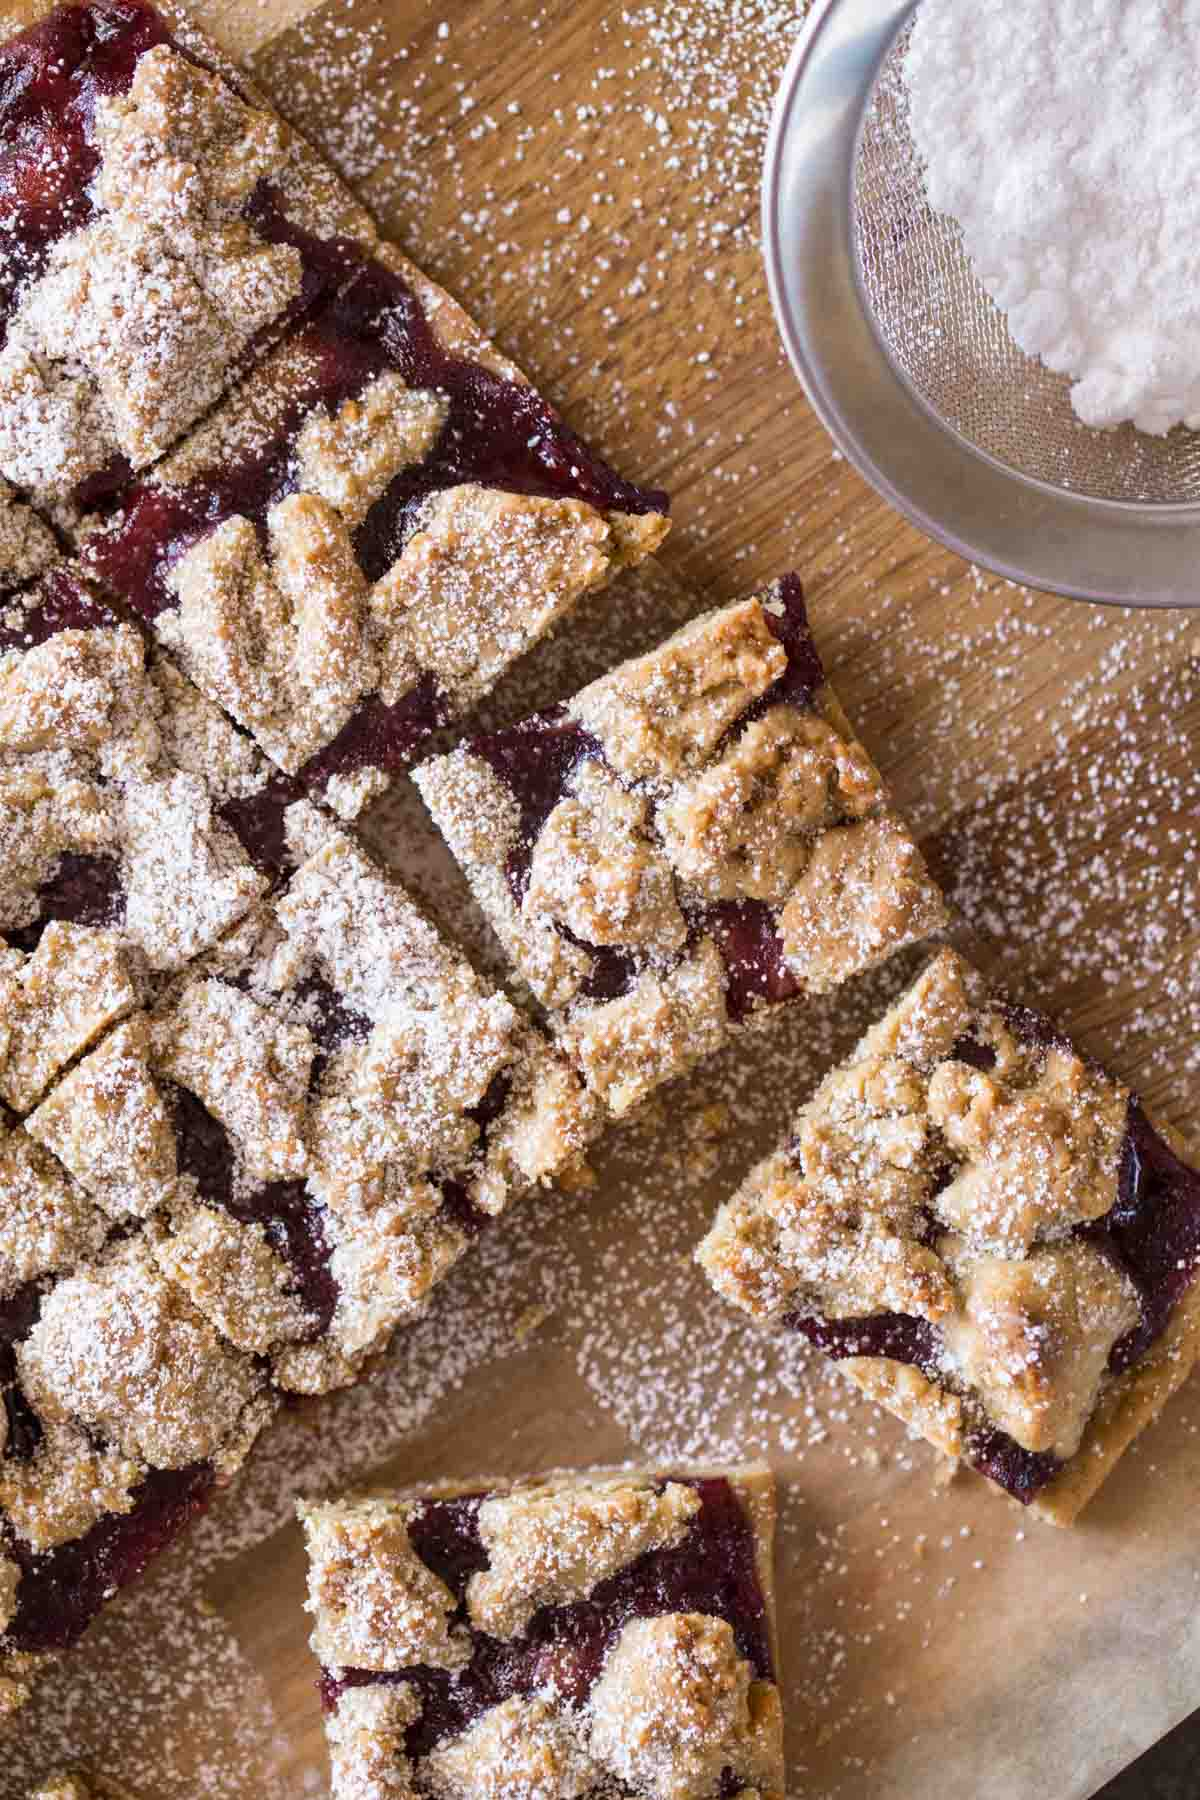 Peanut Butter and Jelly Oat Bars cut into squares and dusted with powdered sugar.